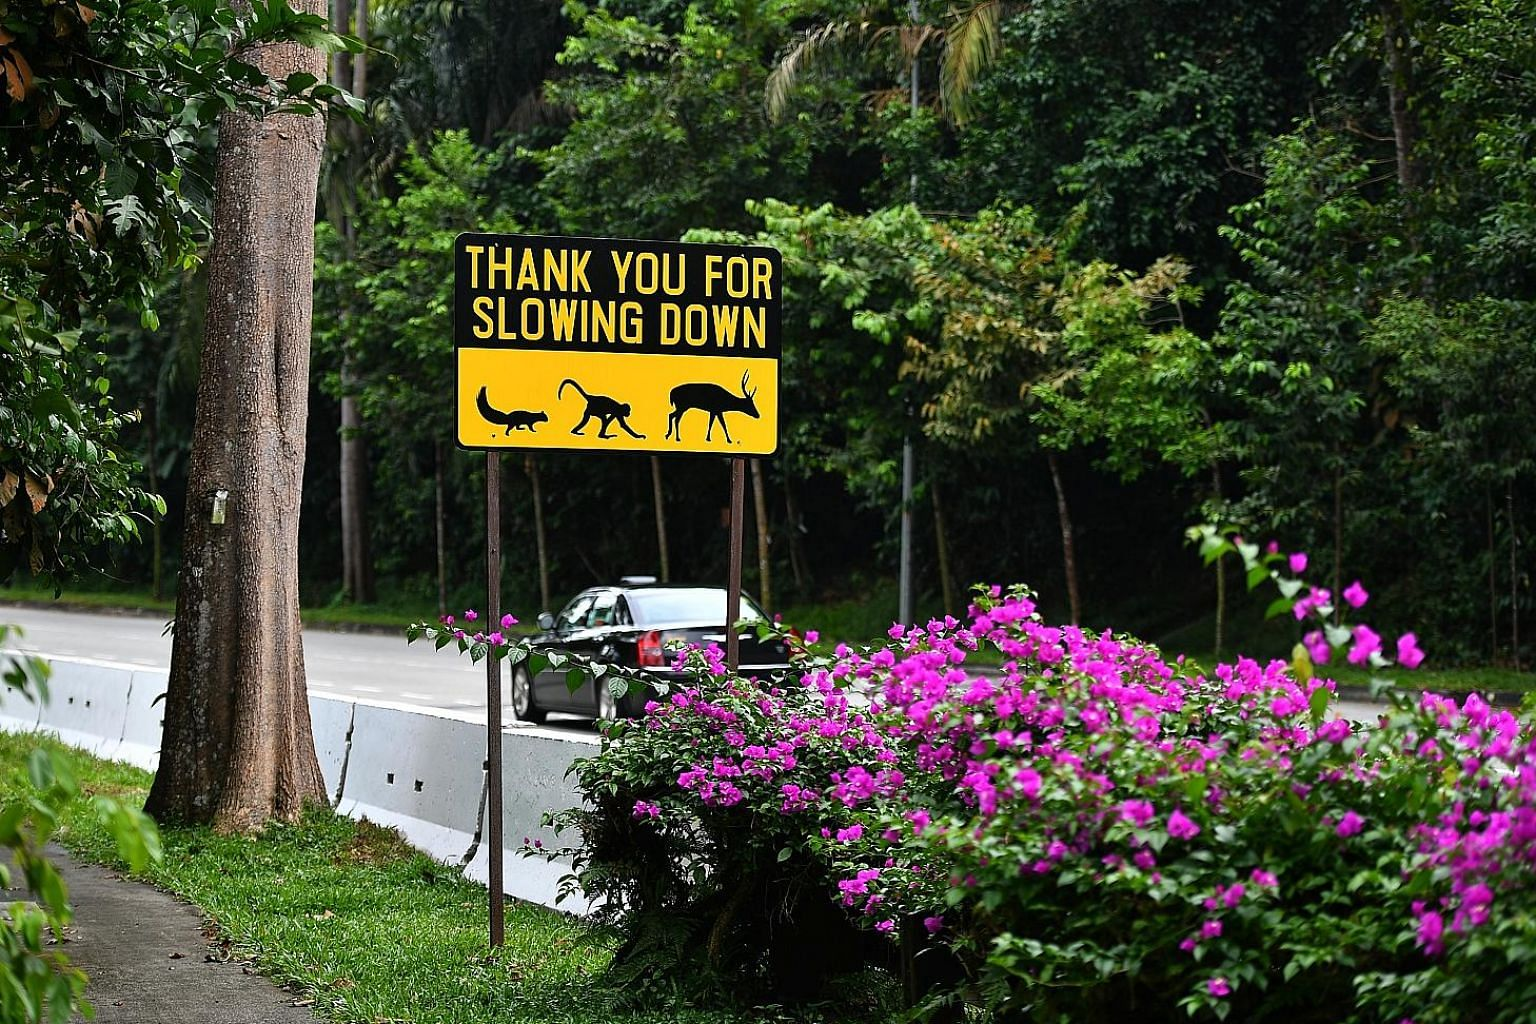 Before development works started at Mandai Lake Road in January last year, Mandai Park Development installed speed-regulating elements such as humps and strips, and hoardings to stop animals from running onto the road. But there are gaps between the hoard